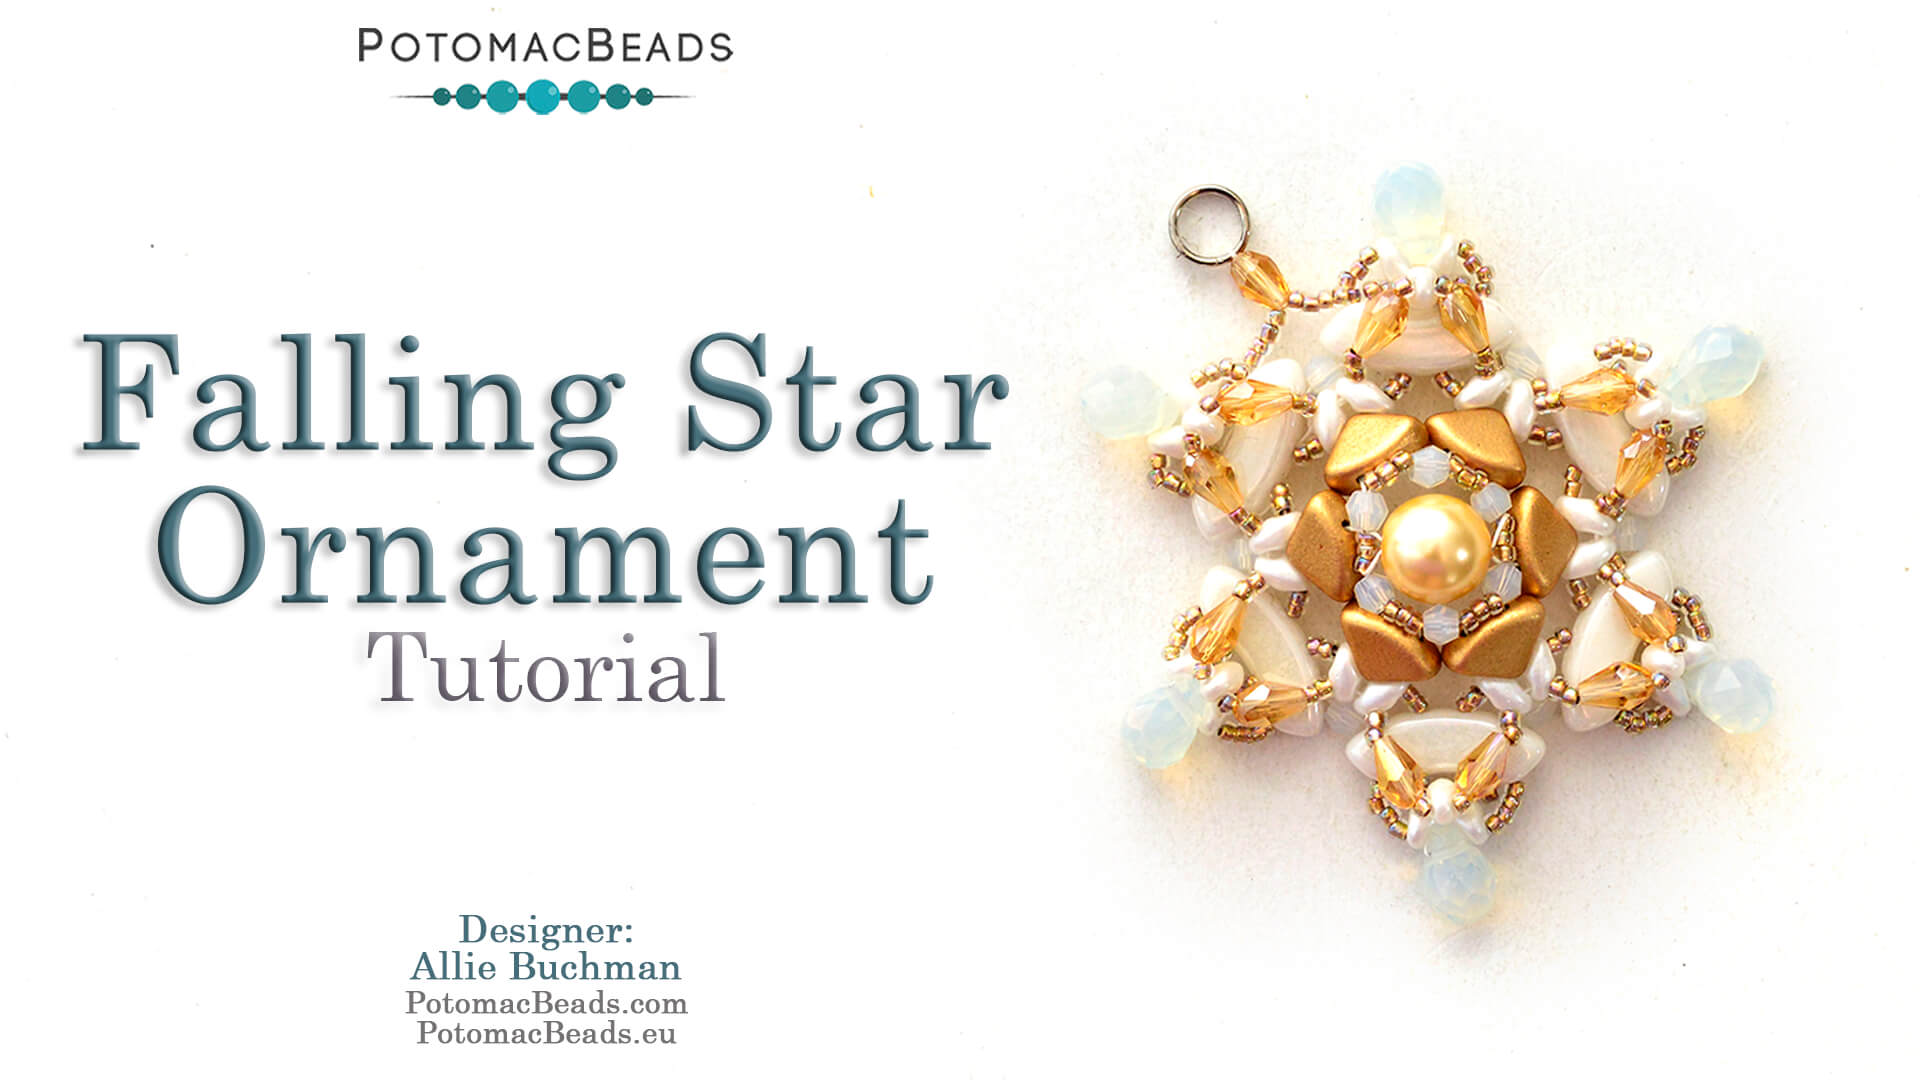 How to Bead / Videos Sorted by Beads / QuadBow & PieDuo Bead Videos / Falling Star Ornament Tutorial